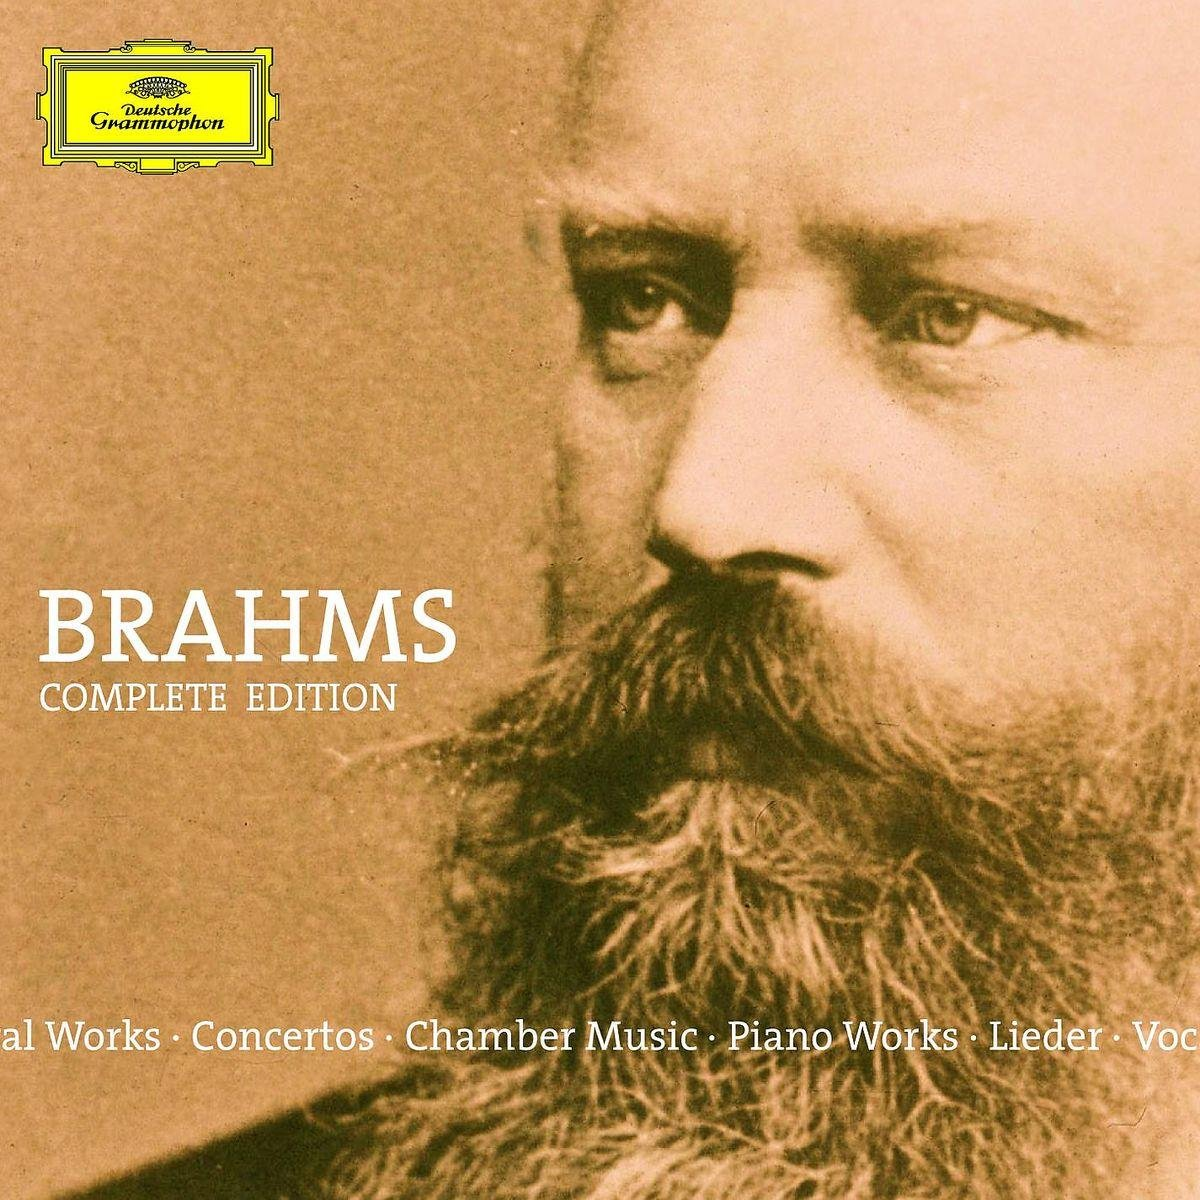 Brahms Complete Edition [46 CD - Limited Edition] by Deutsche Grammophon